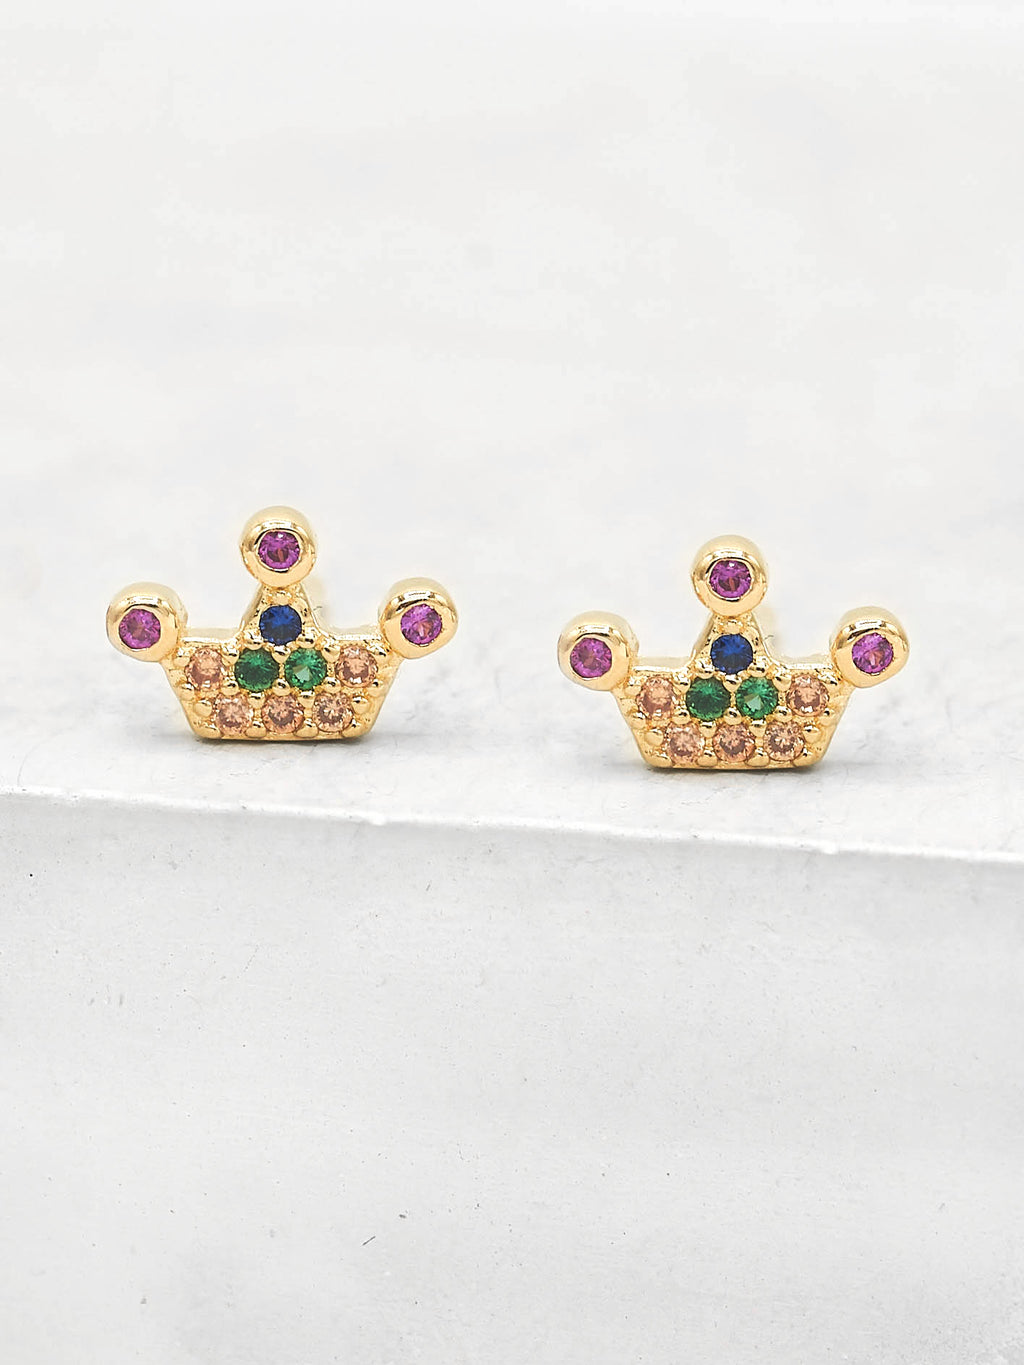 Crown design with CZ Round  rainbow stones Stud Gold Plated Earrings by The Faint Hearted Jewelry